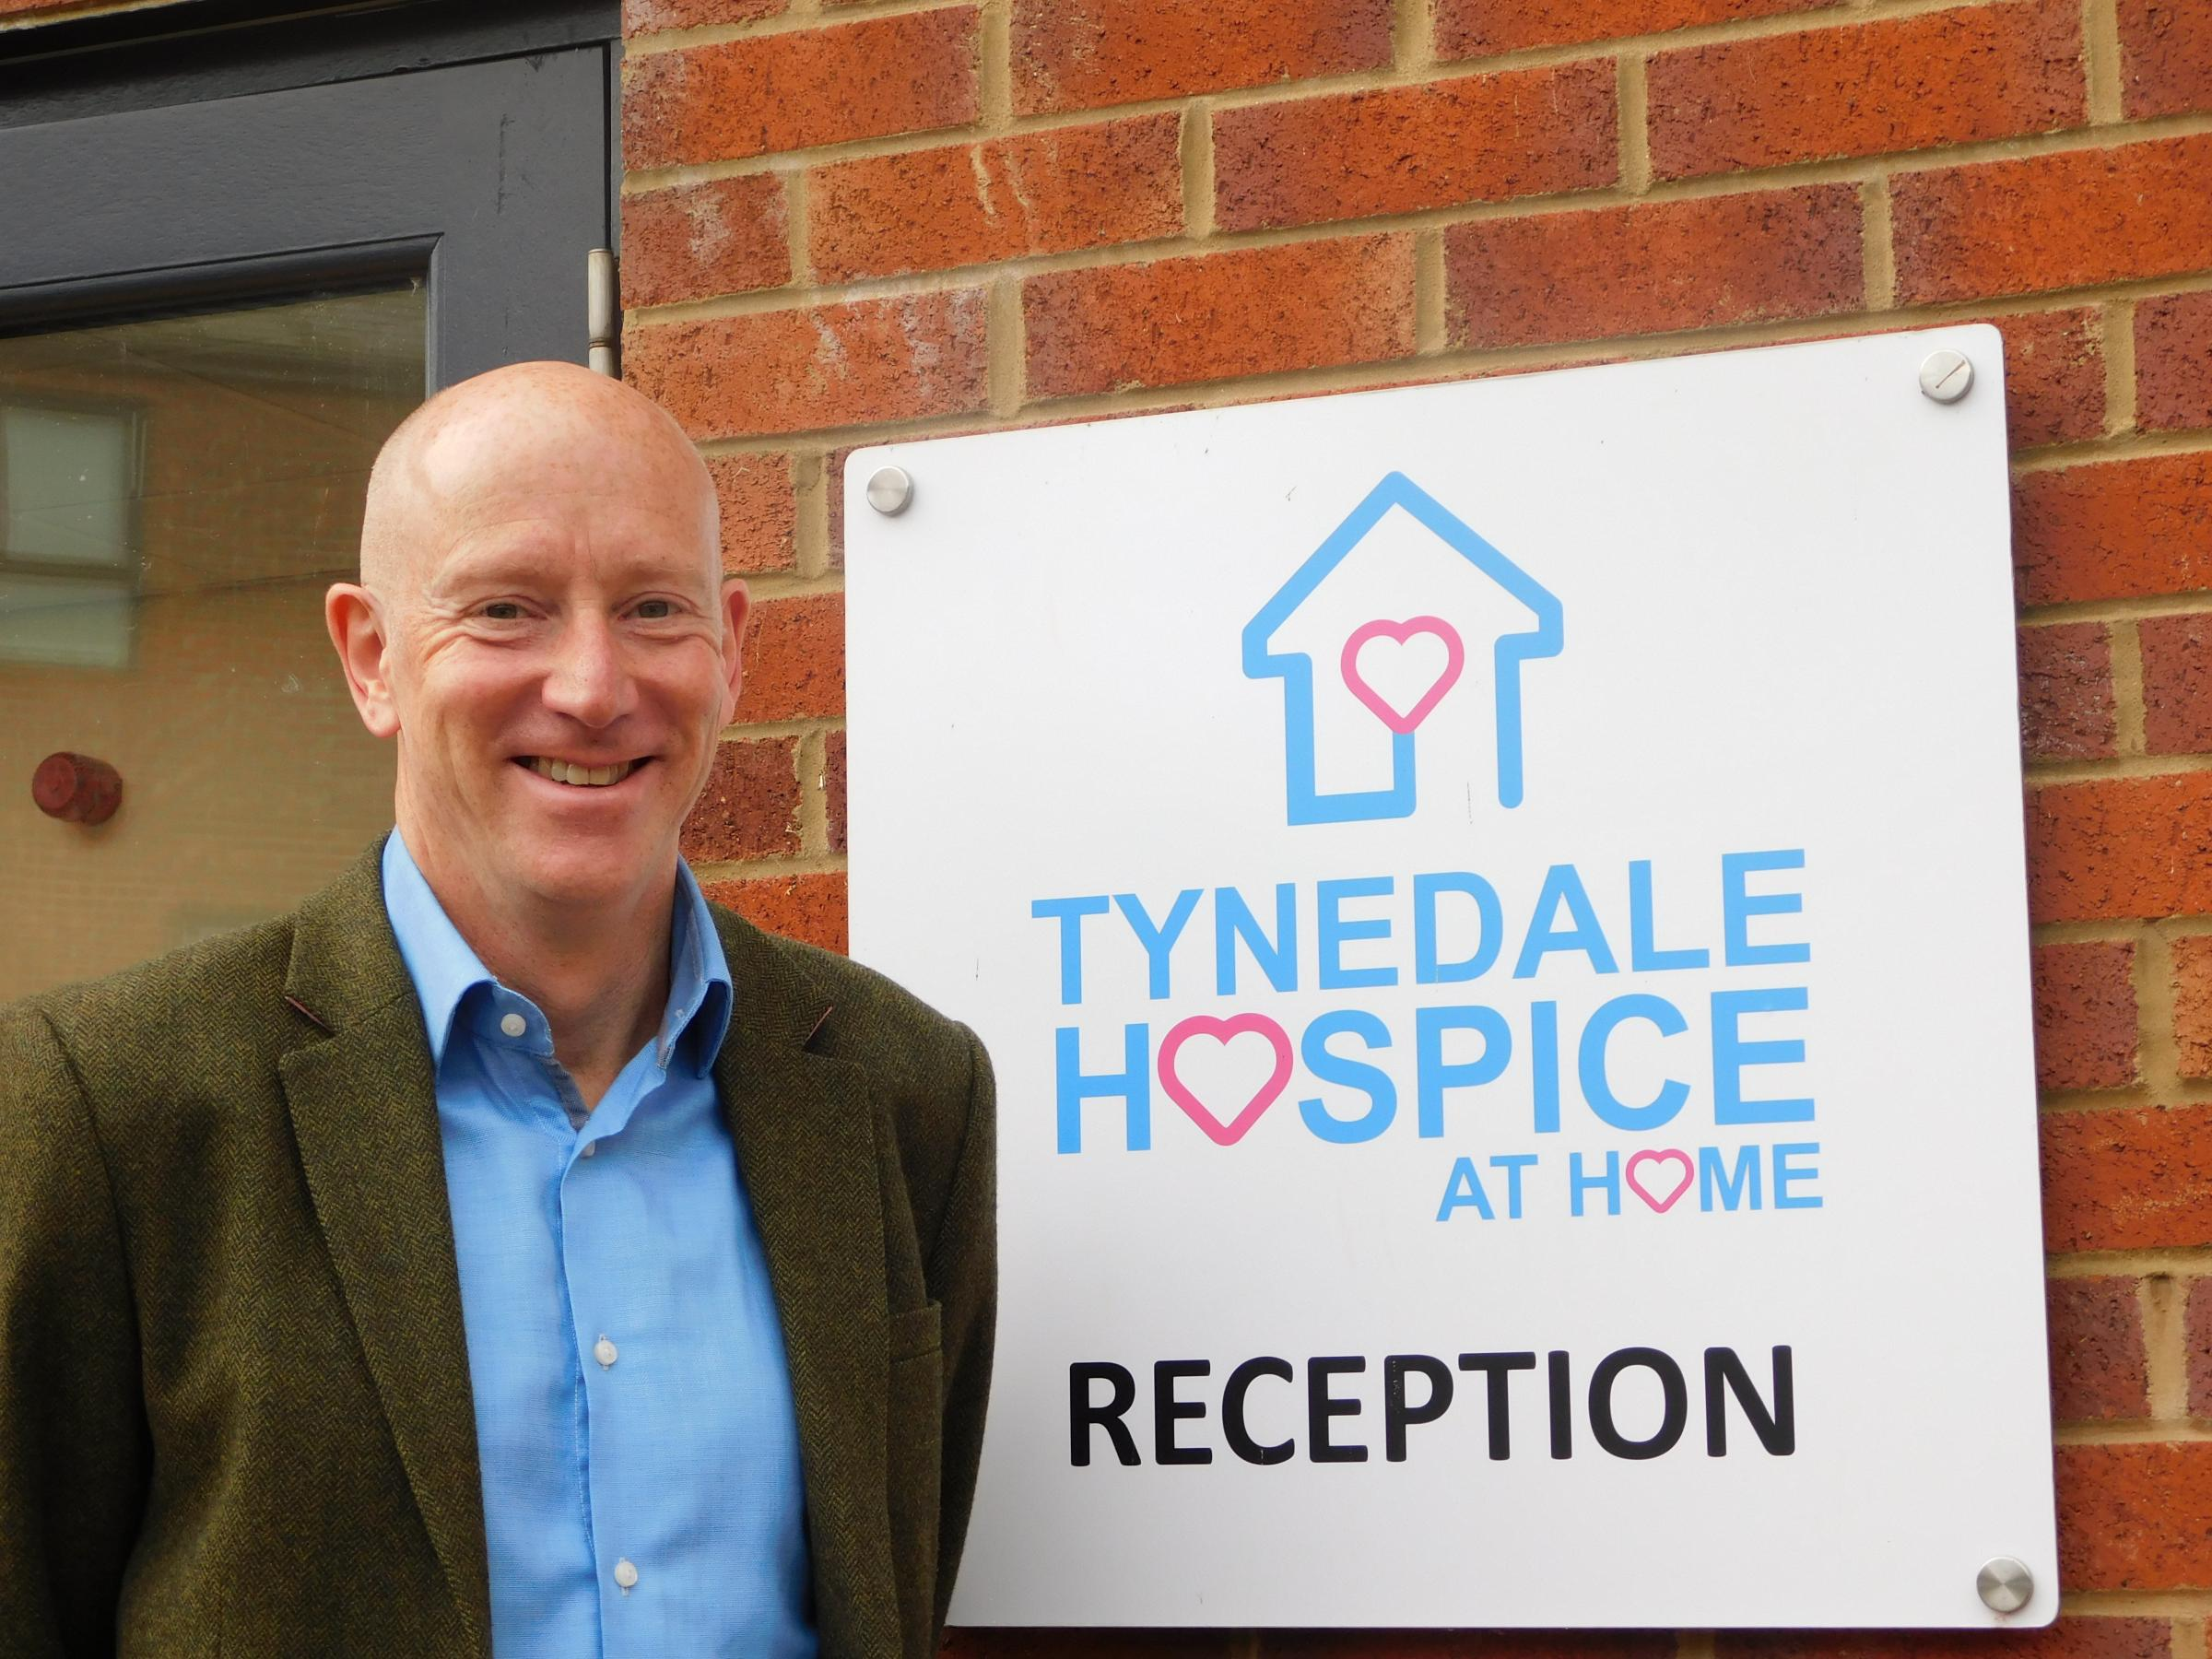 Tynedale Hospice's new chief executive Mike Thornicroft.